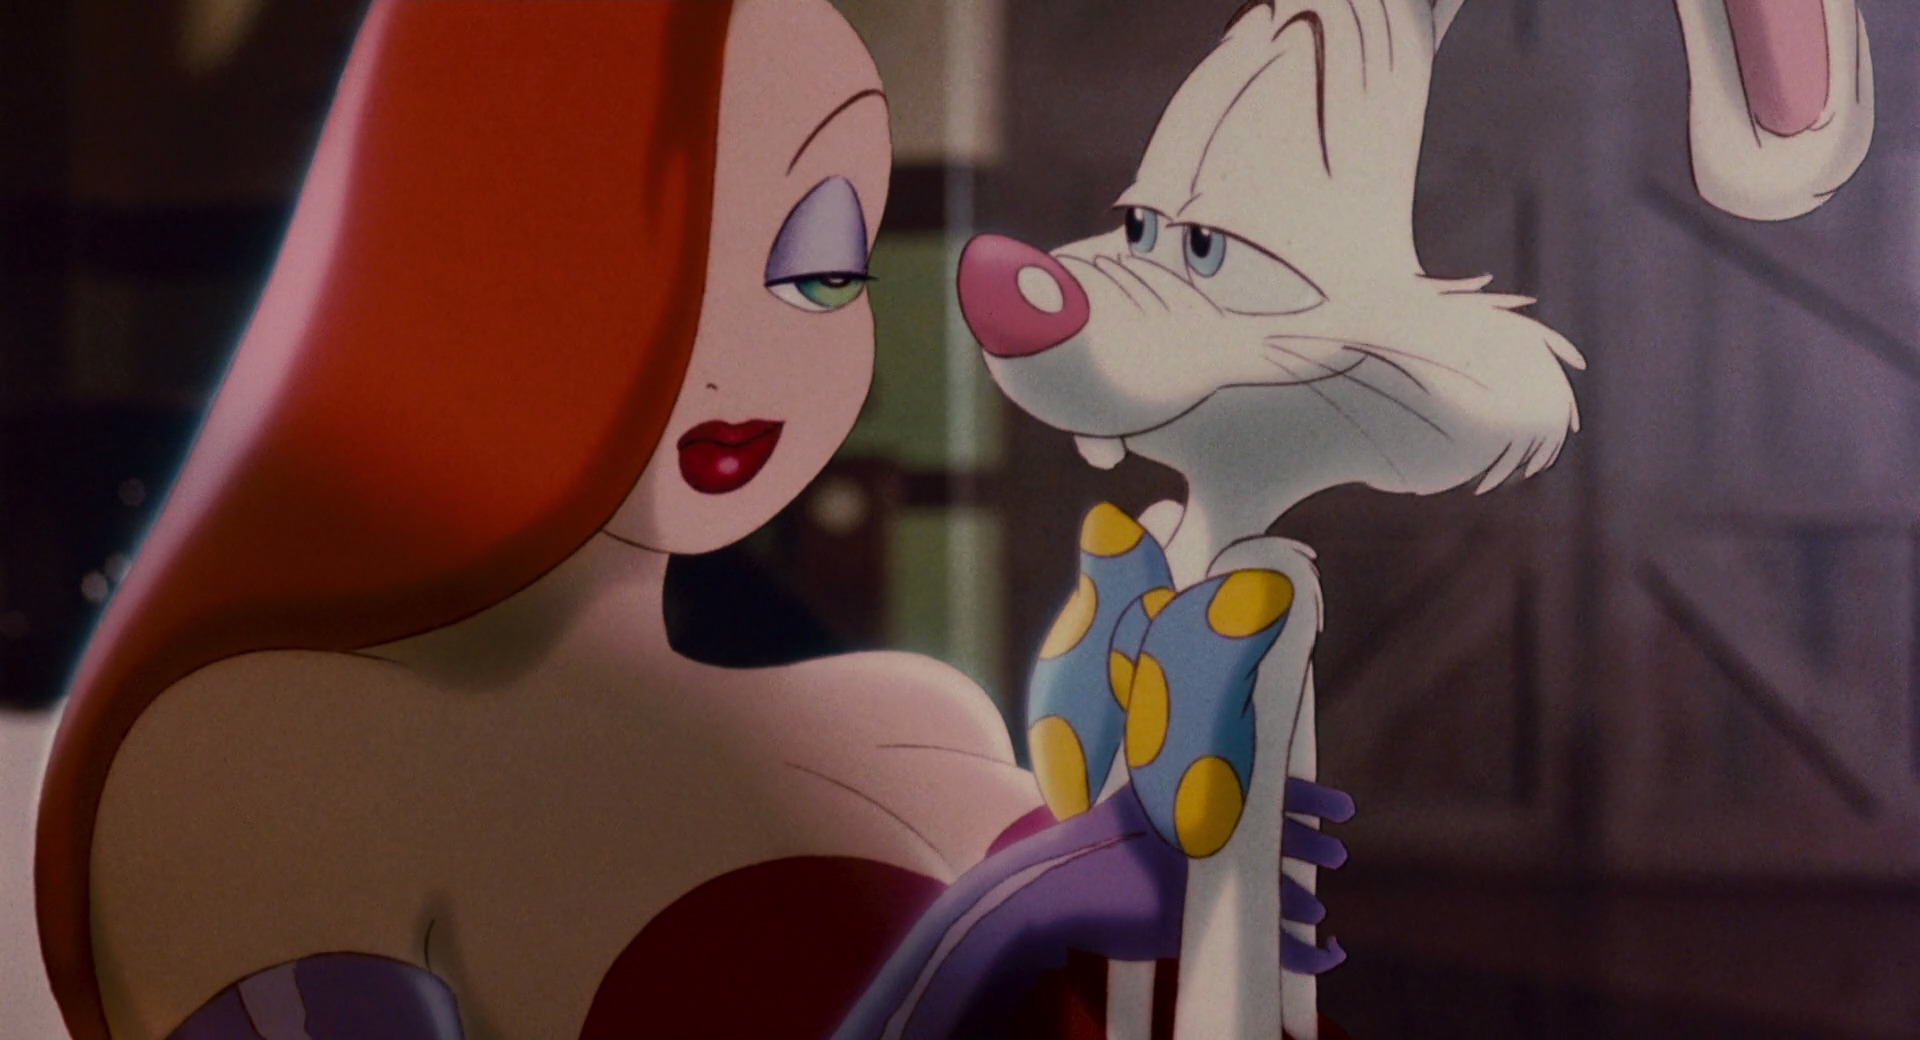 Jessica Rabbit | Wiki Dominios Encantados | FANDOM powered by Wikia